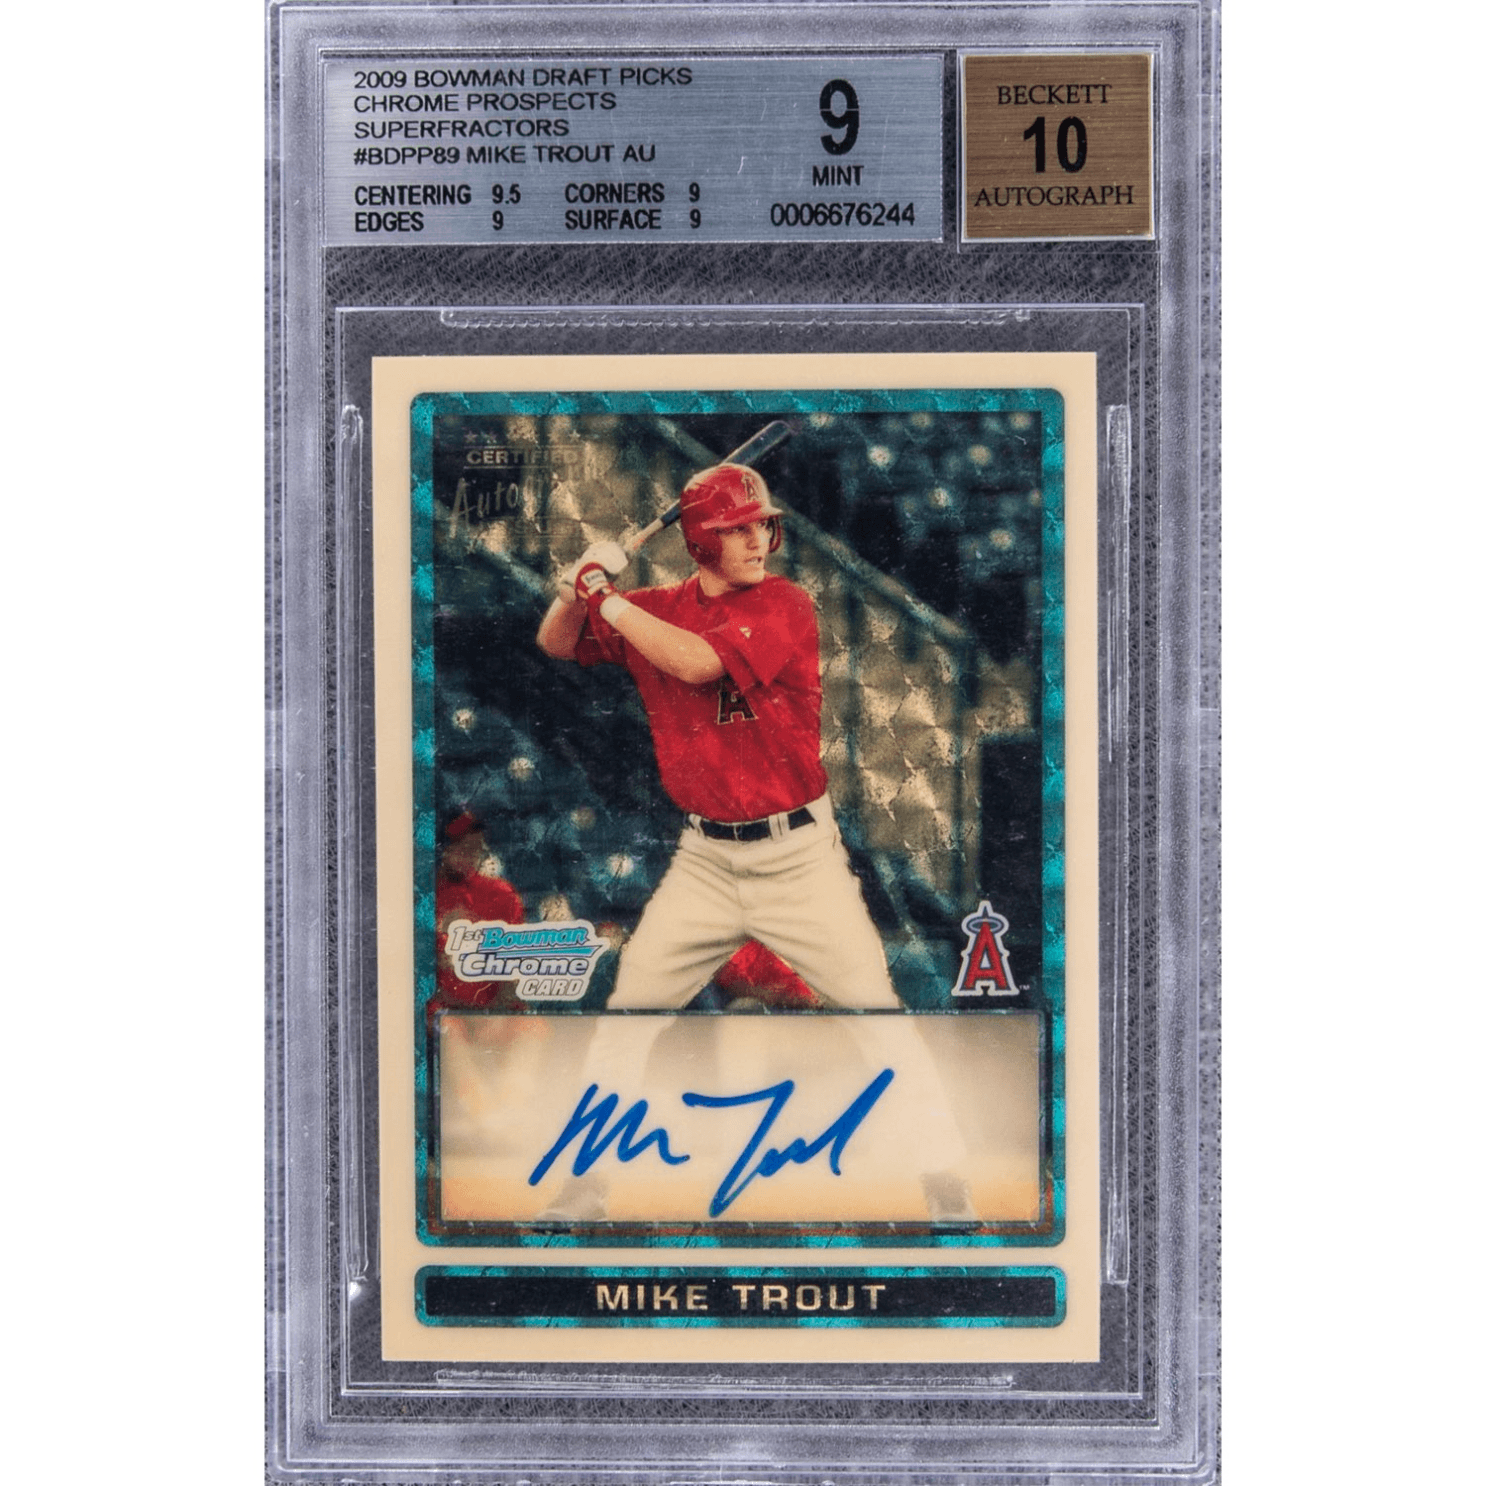 Mike Trout Rookie Card sets all time record.